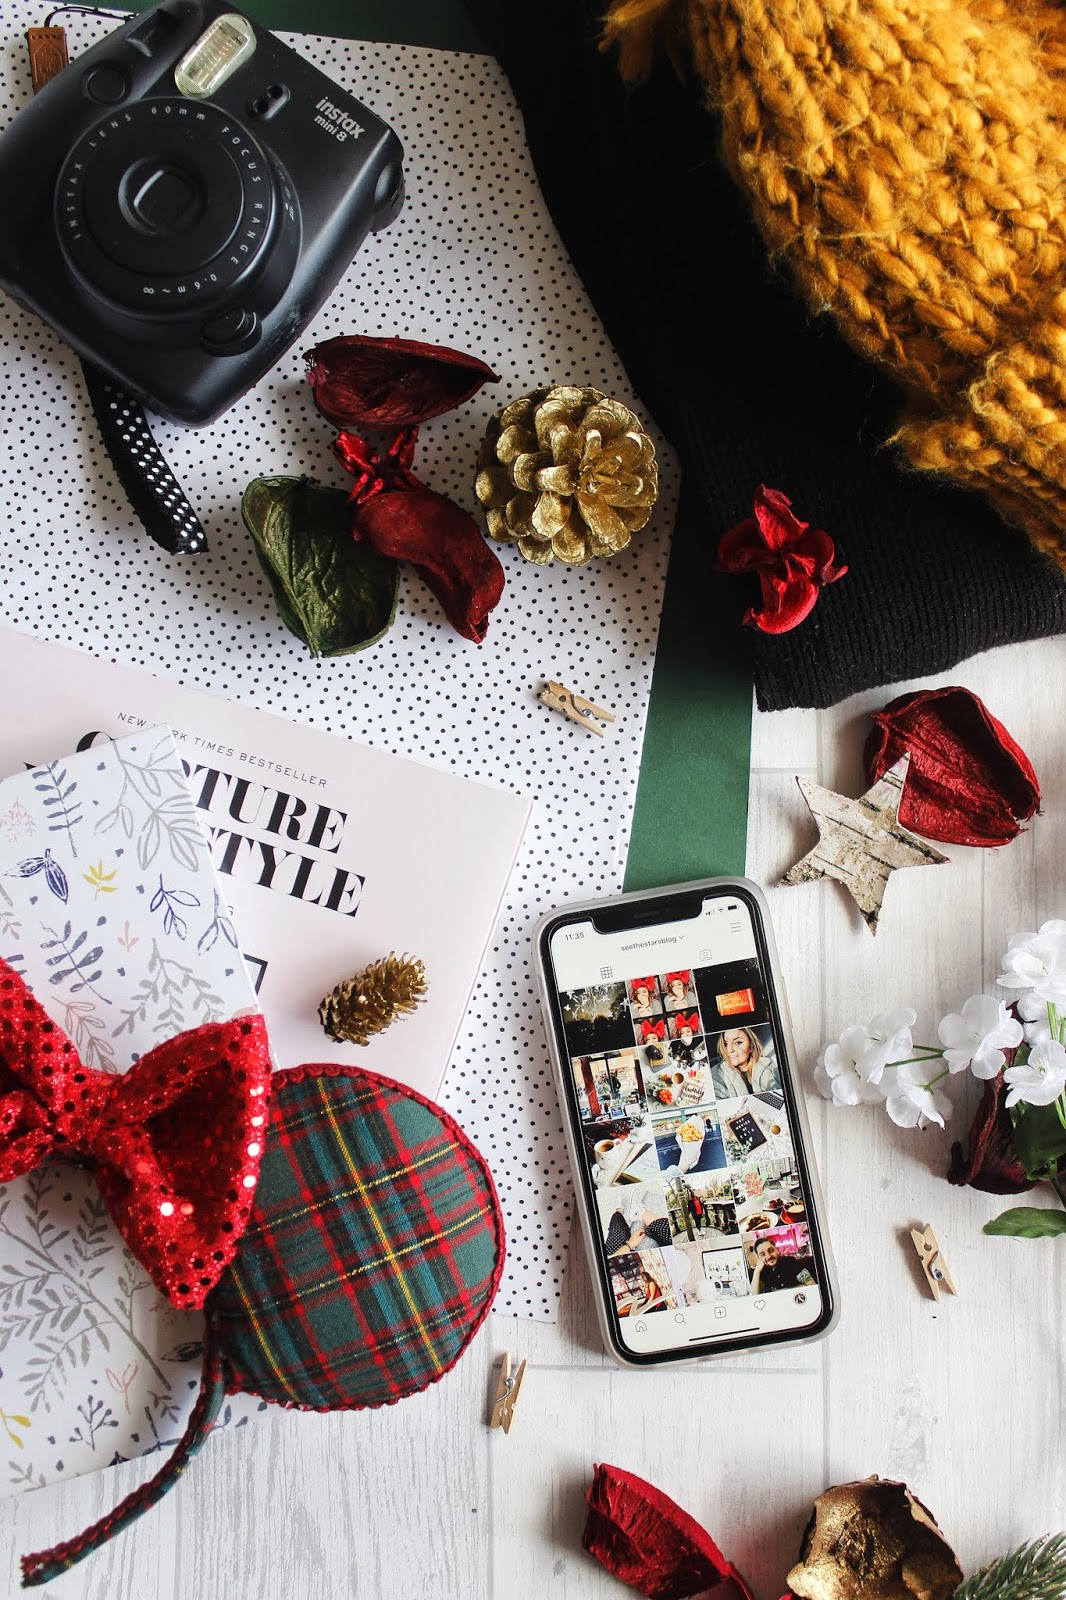 20 blog post ideas for blogmas - see the stars